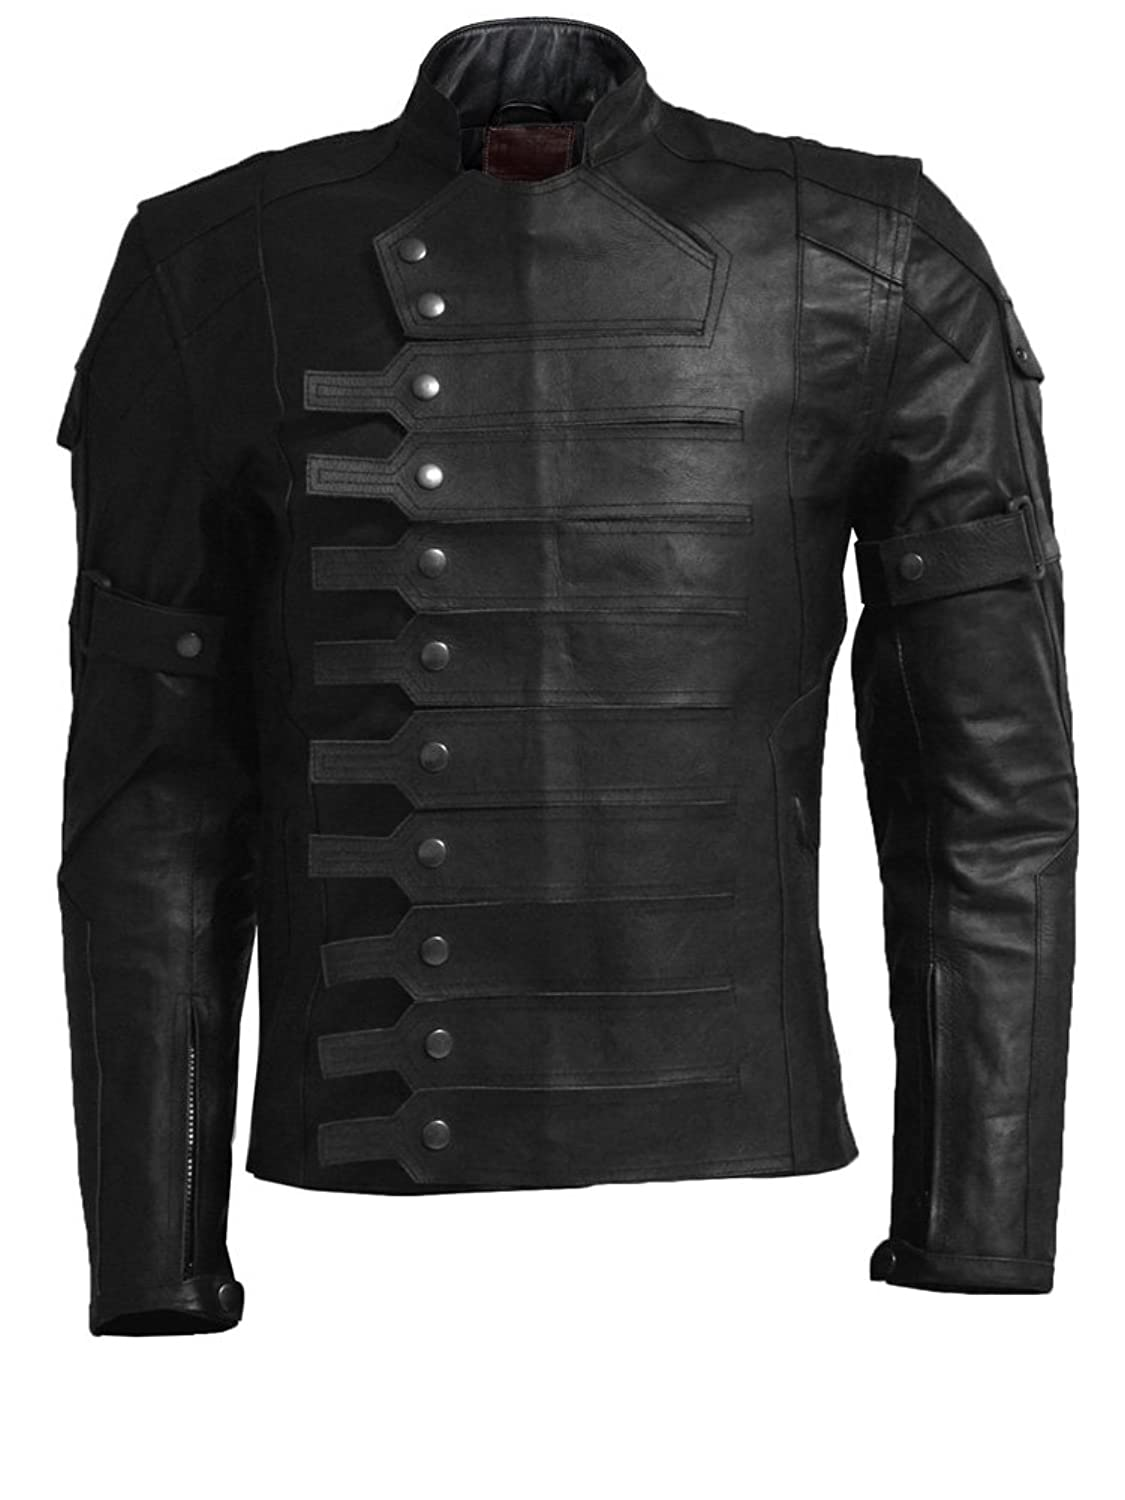 Bucky Barnes: Winter Soldier Detachable Sleeve Black Real Leather Jacket - DeluxeAdultCostumes.com